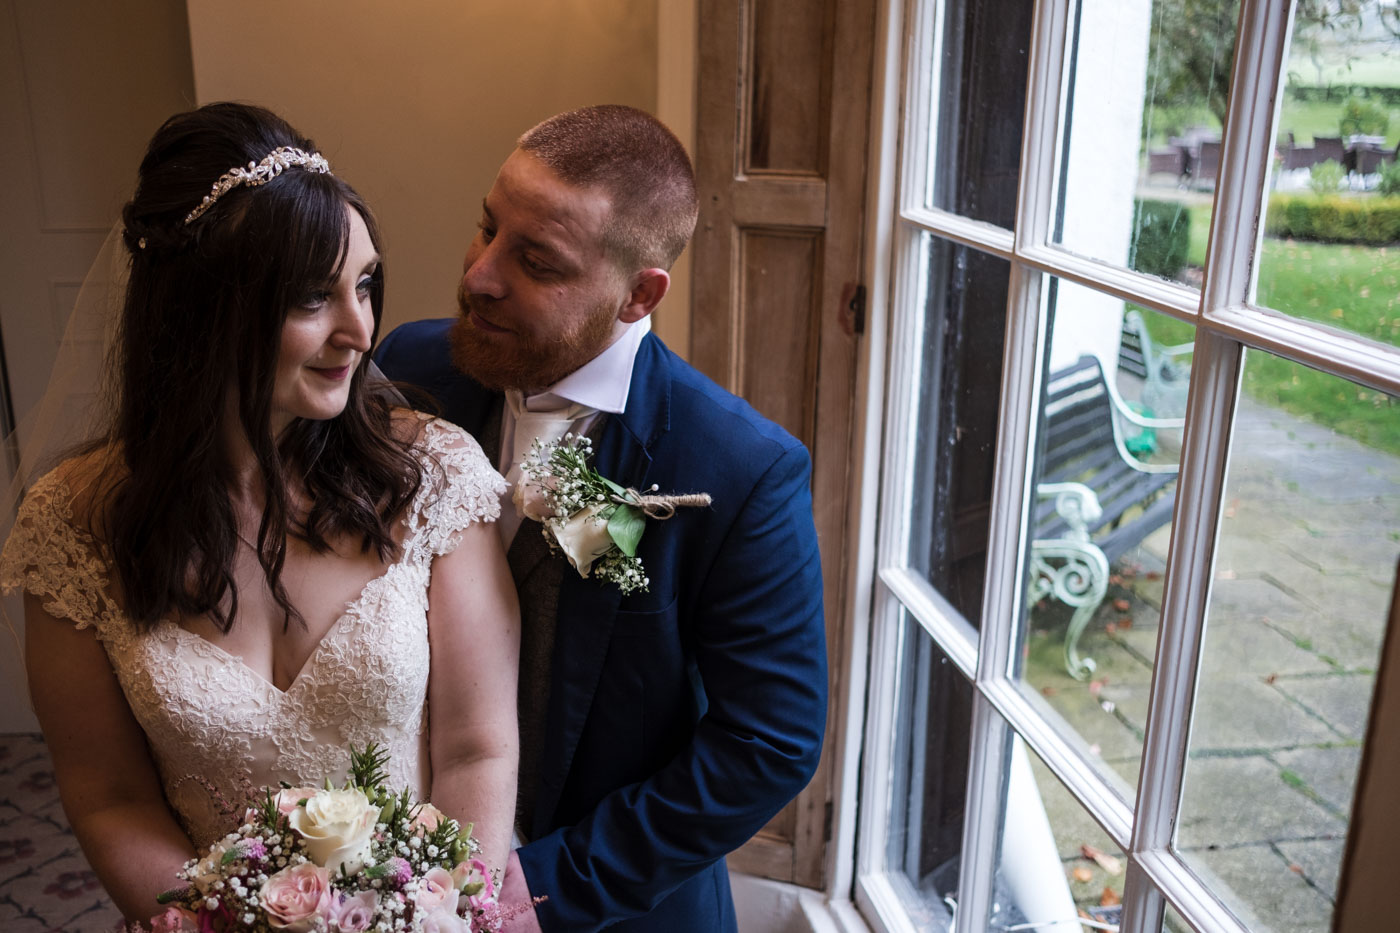 couple in front of window at country house wedding venue, relaxed wedding photographer